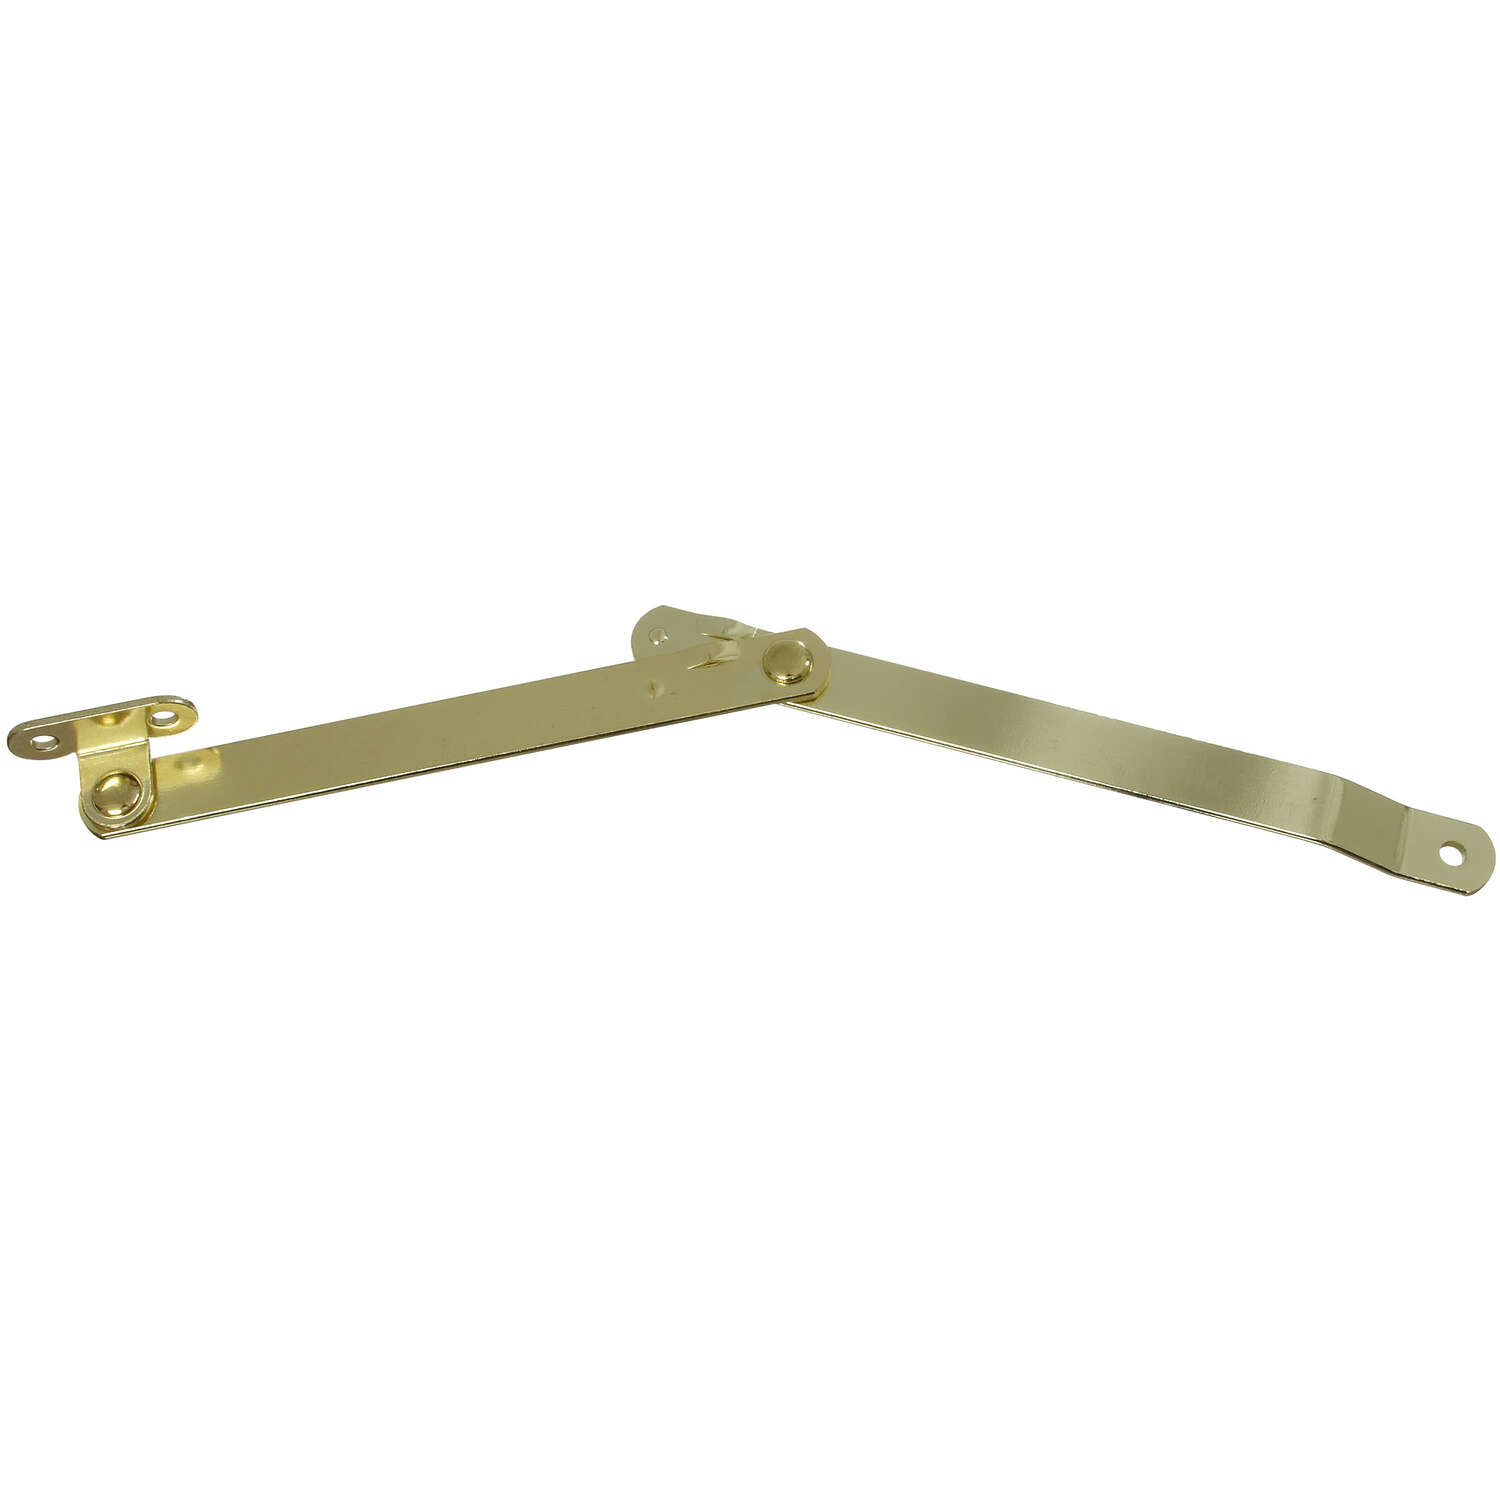 National Hardware Brass-Plated Steel Left Hand Folding Support 1 pk 6 in.